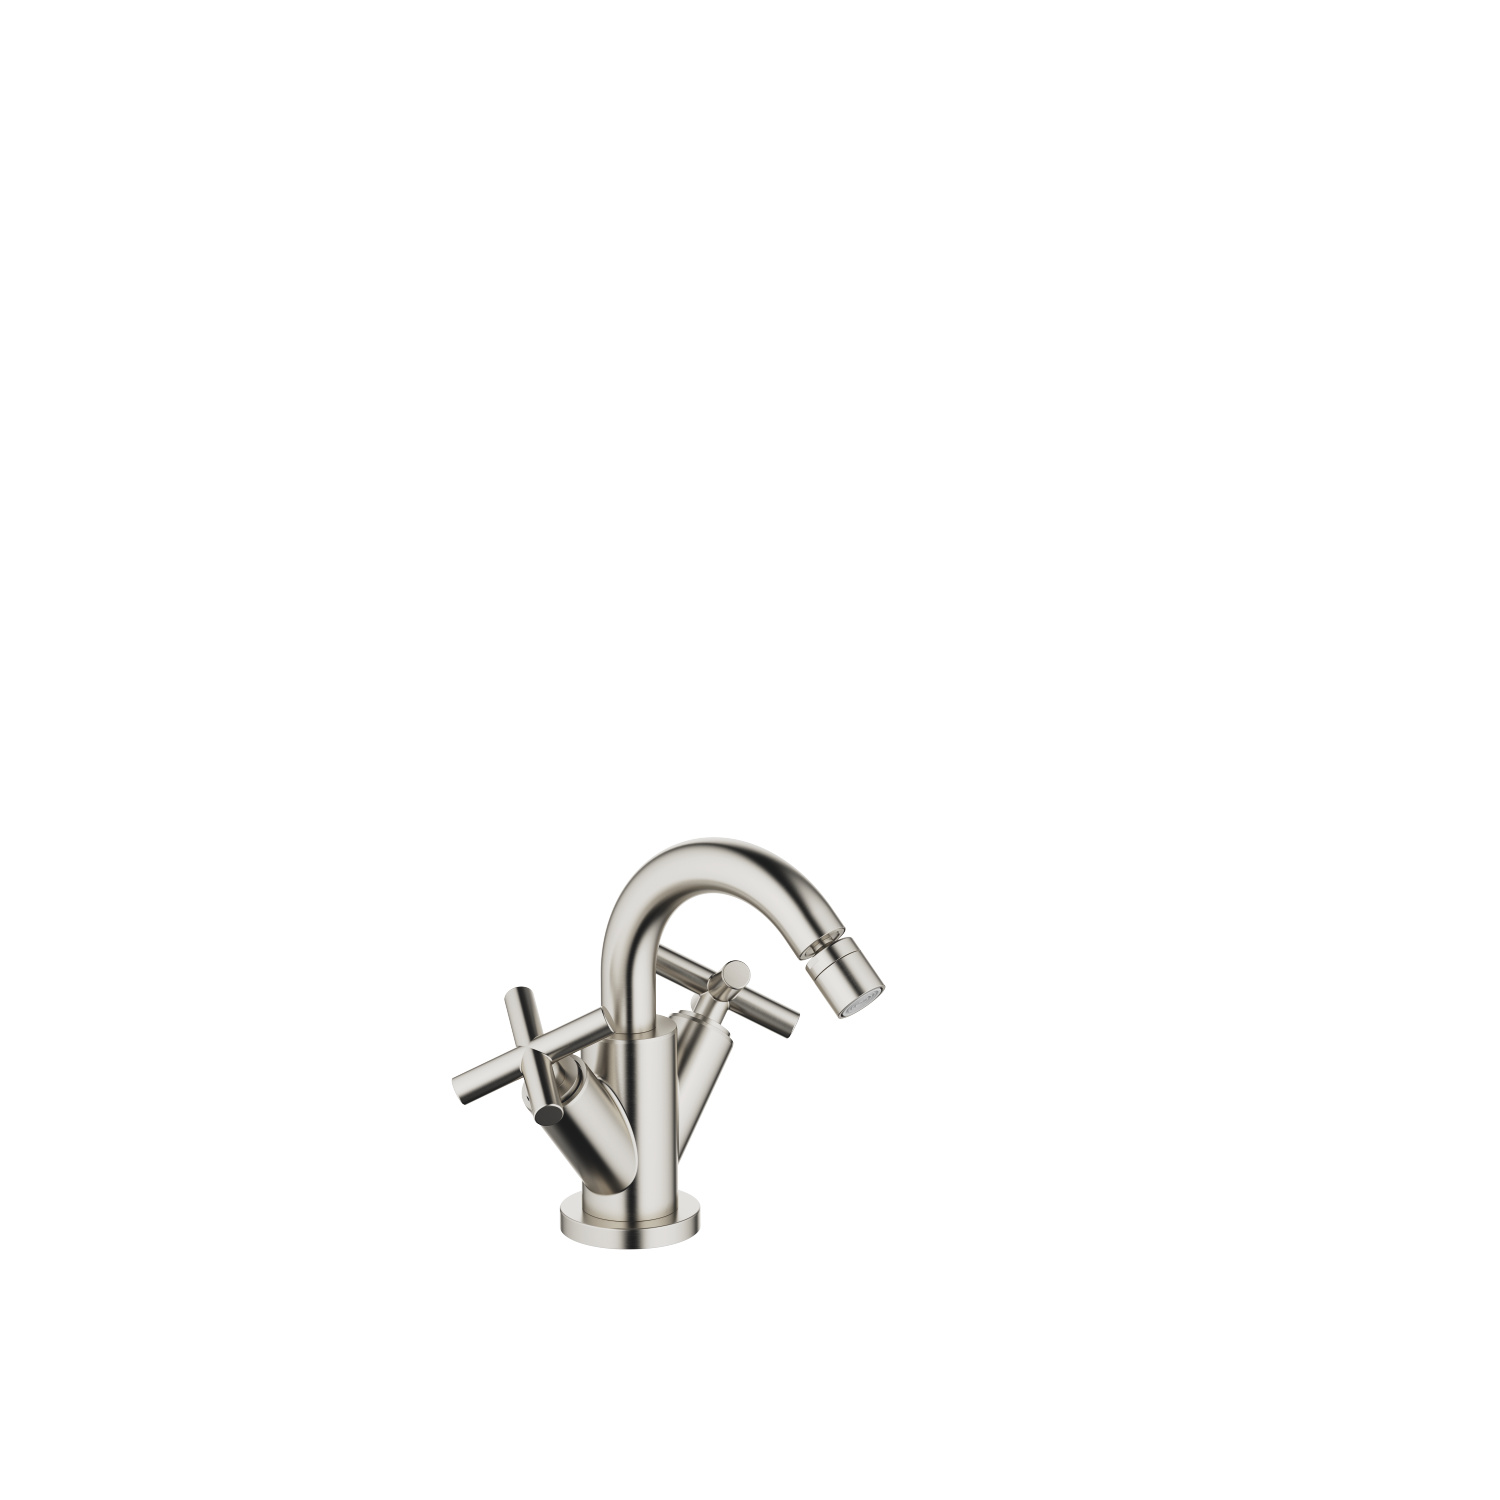 Single-hole bidet mixer with pop-up waste - platinum matt